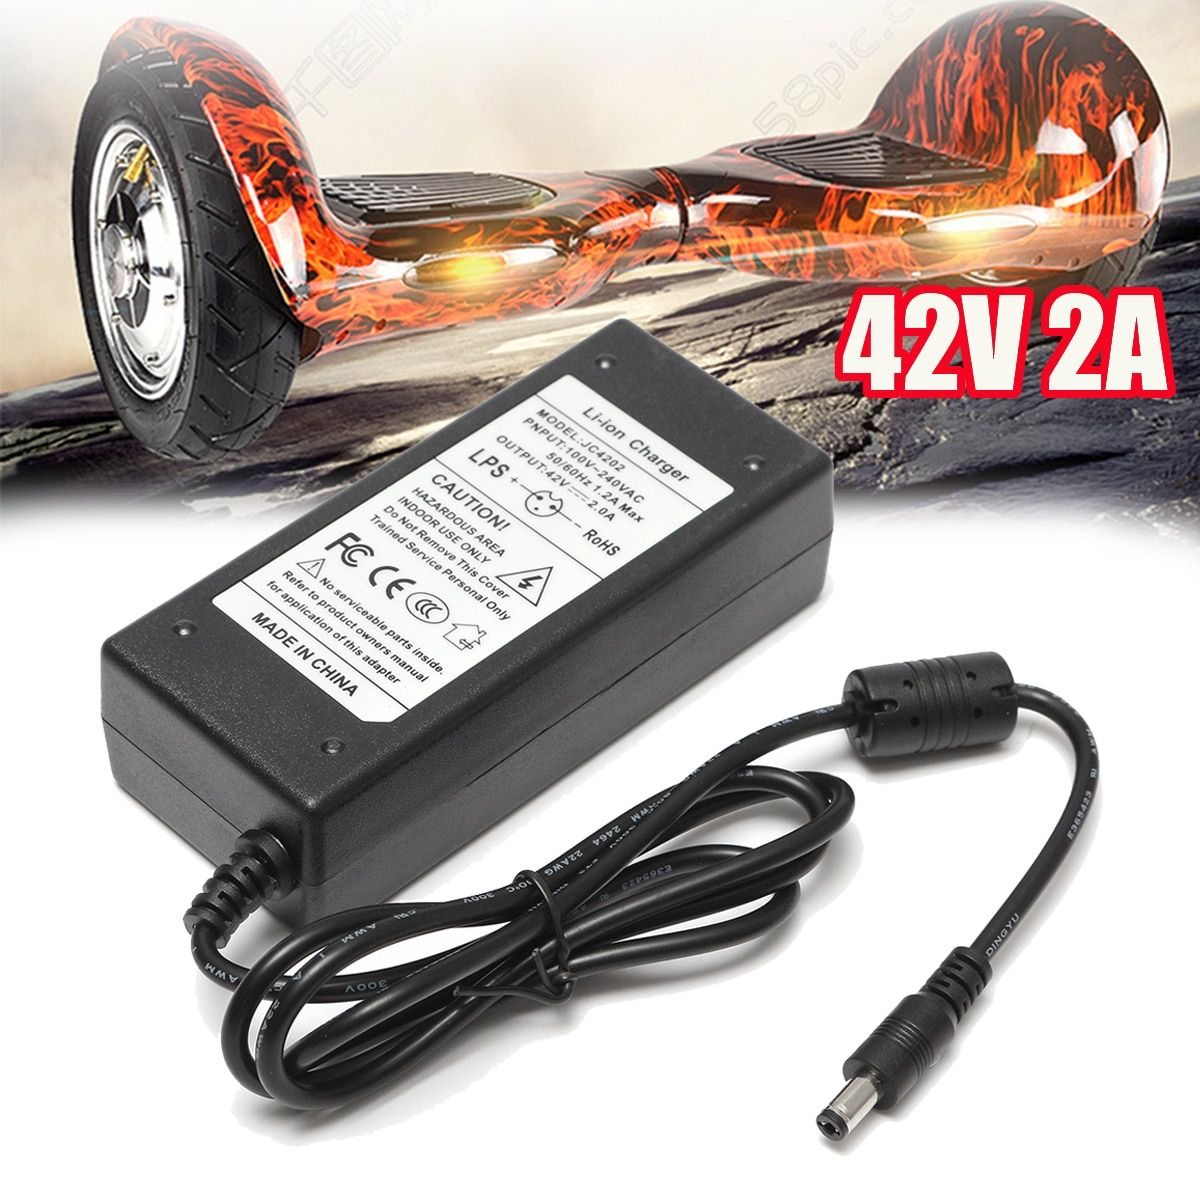 2A 42V Power Charger Adapter For 36V Li-ion Lithium Battery Two-wheel Vehicle Chargers